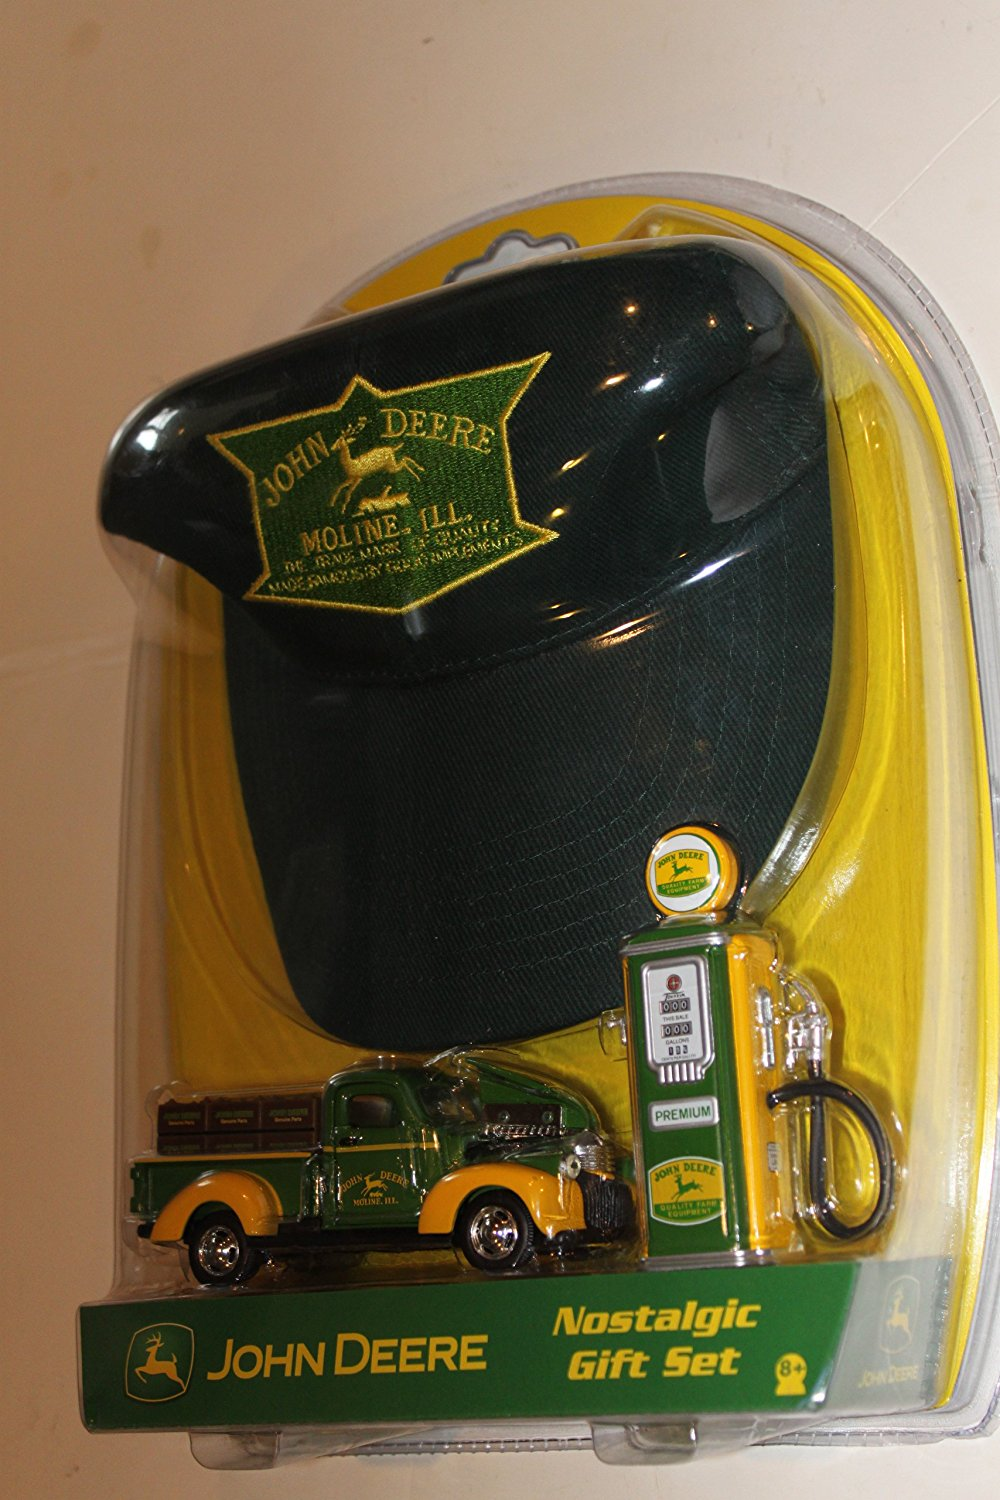 John Deere Collector Nalstalgic Gift Set! HAT~1:43 1942 Ford TRUCK~ 1950's GAS PUMP ~ MOLINE 00951